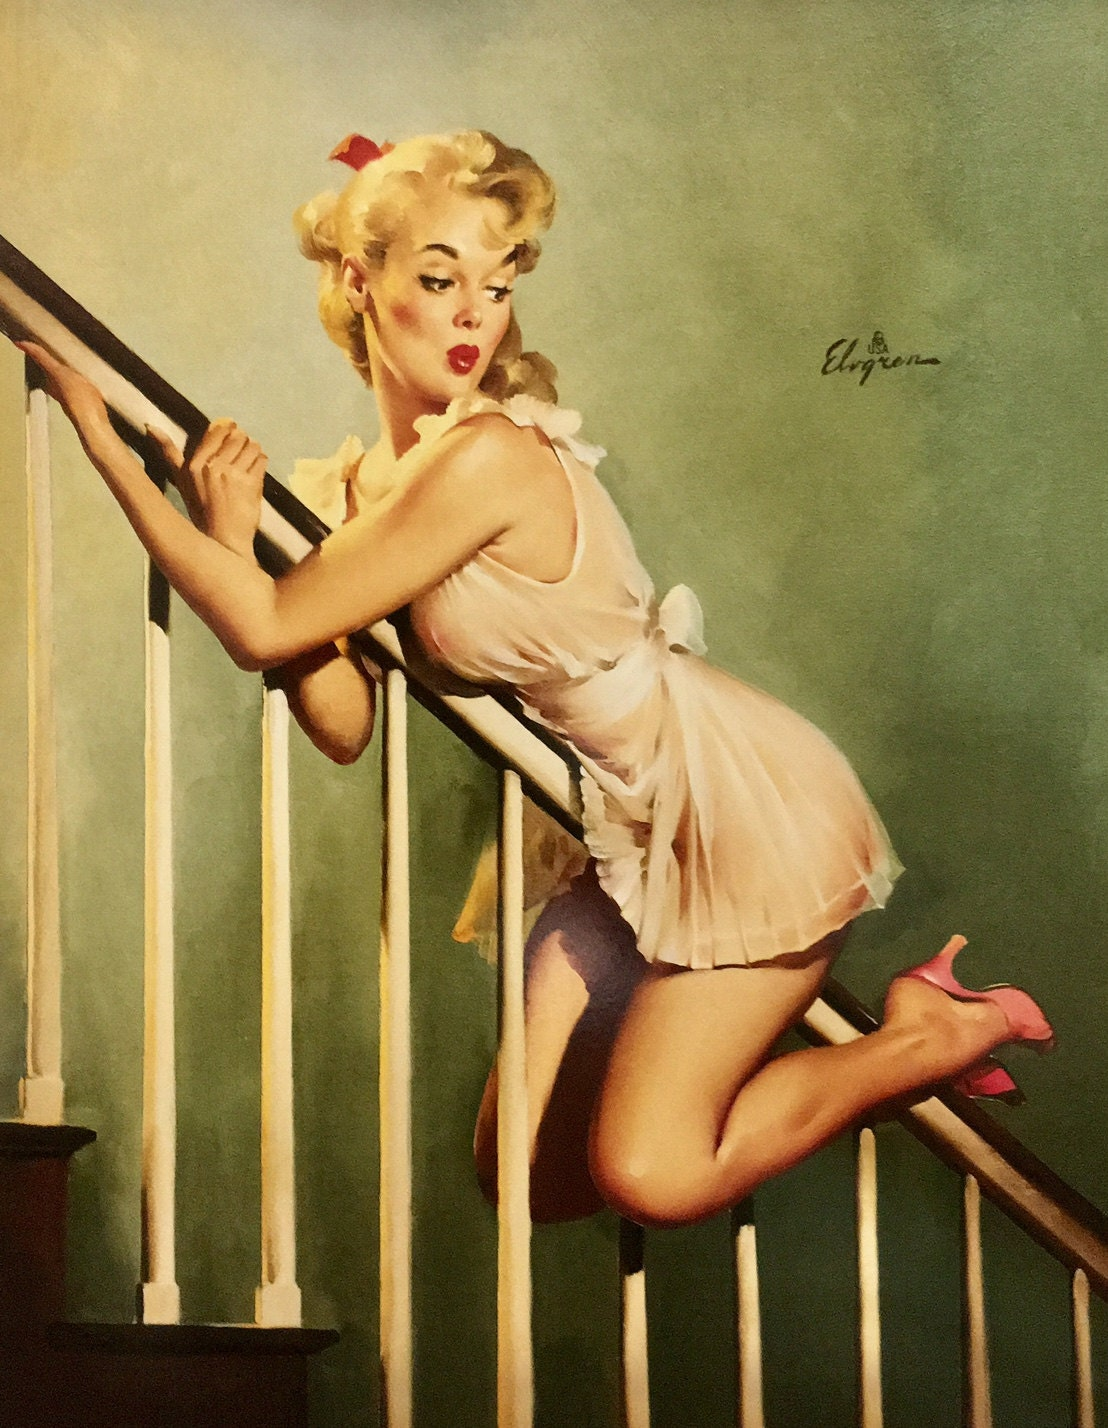 a309bbbccfe Large 12x16 LOOK OUT BELOW by Elvgren Pin-Up Playing Lingerie ...